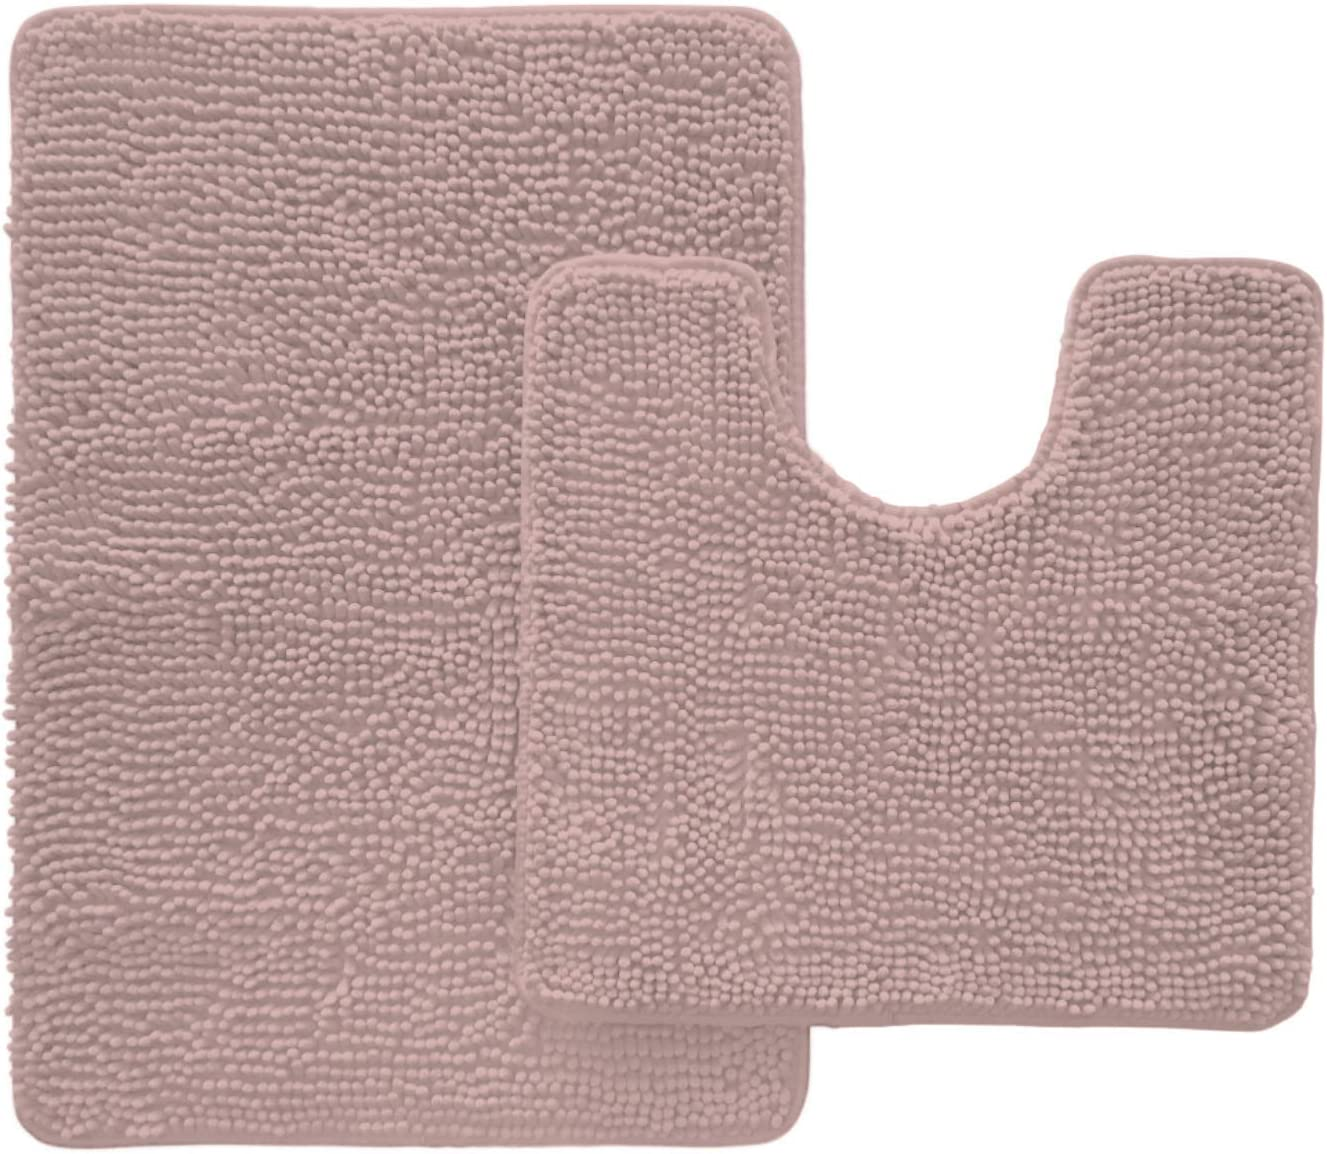 Gorilla Grip Original Shaggy Chenille 2 Piece Area Rug Set, Many Colors, Includes Oval U-Shape Contoured Toilet Mat and 30x20 Bathroom Rugs, Machine Wash Mats for Tub, Shower and Bath Room, Dusty Rose